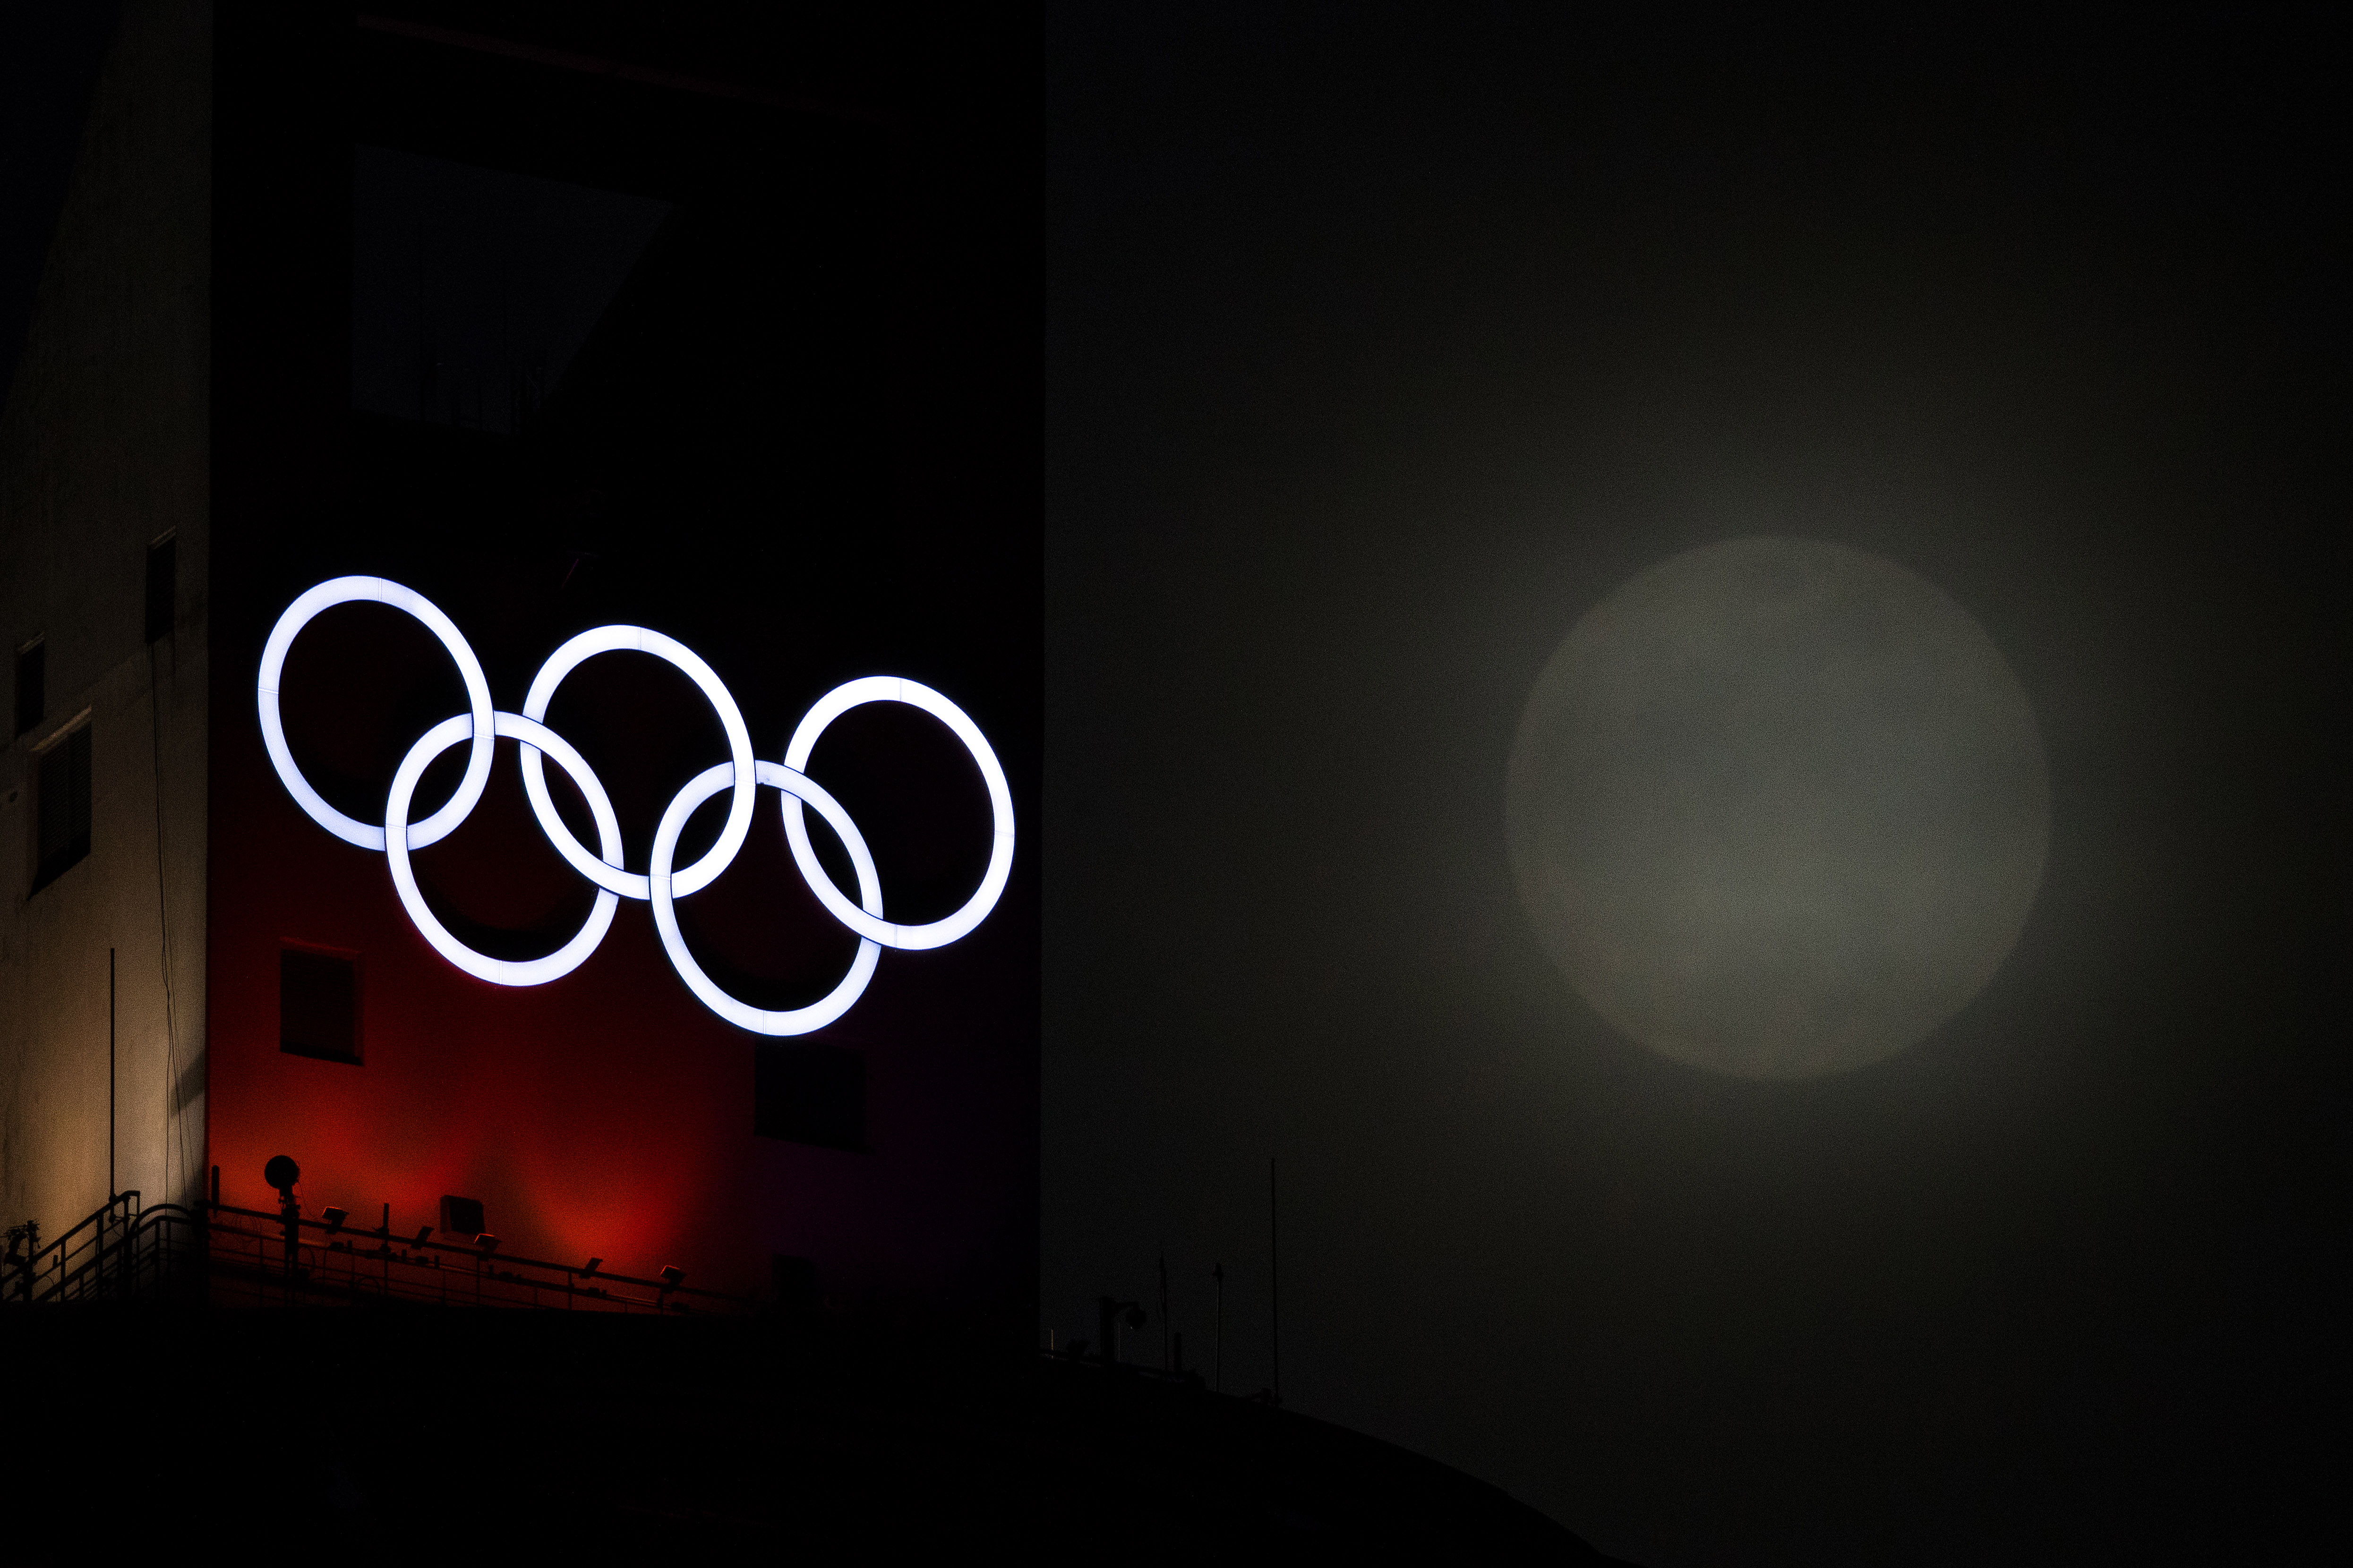 A Super Moon rises through the clouds past the Olympic Rings ahead of the Pyeongchang 2018 Winter Olympics on January 31, 2018 in Pyeongchang-gun, South Korea.